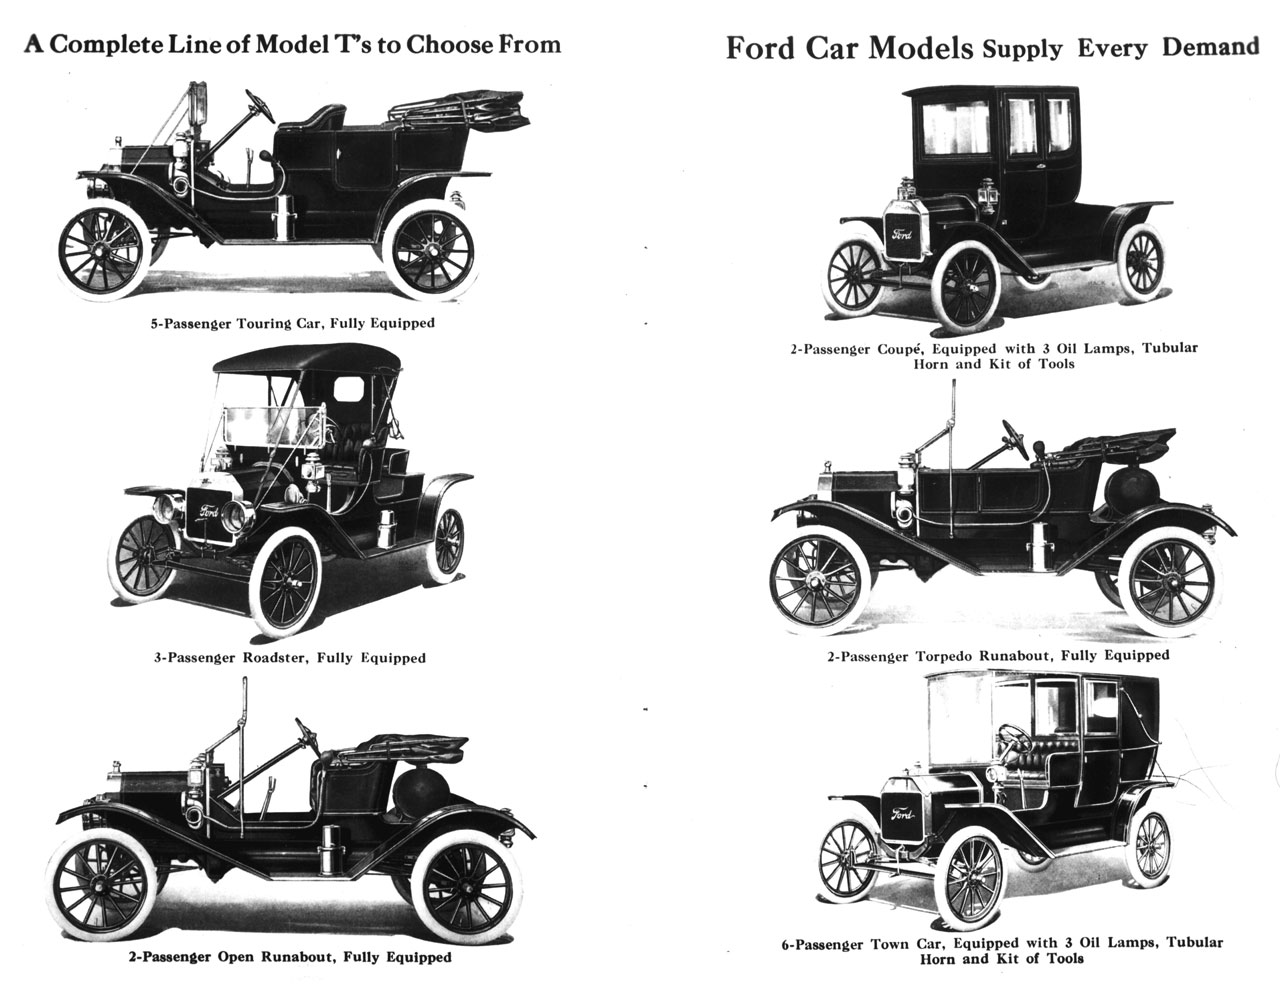 339757 together with Basic 1923 T Frame Kit W Deluxe Body And Bed Flat Floor 43661 also 100 Anos Do Ford Modelo T moreover 1931 Model A Wiring Diagram moreover Model T Ford Chassis. on 1927 model t coupe parts